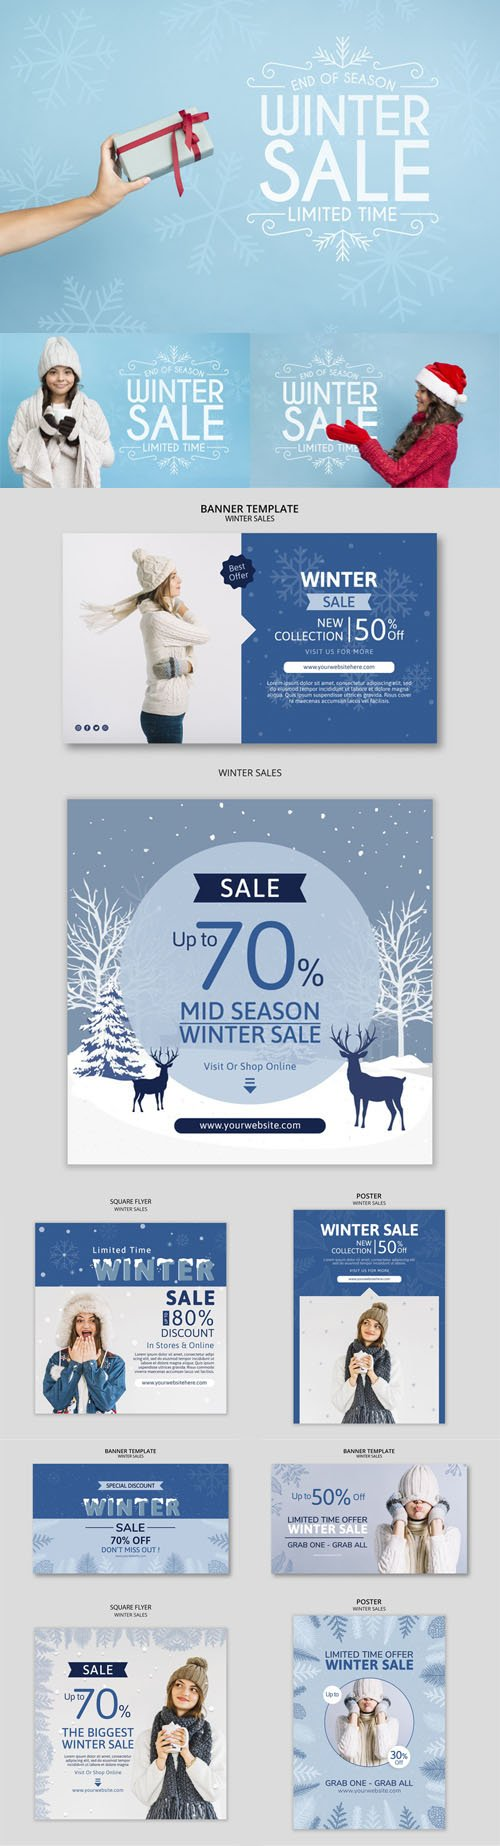 Winter Sales Marketing Campaign PSD Templates Collection 3